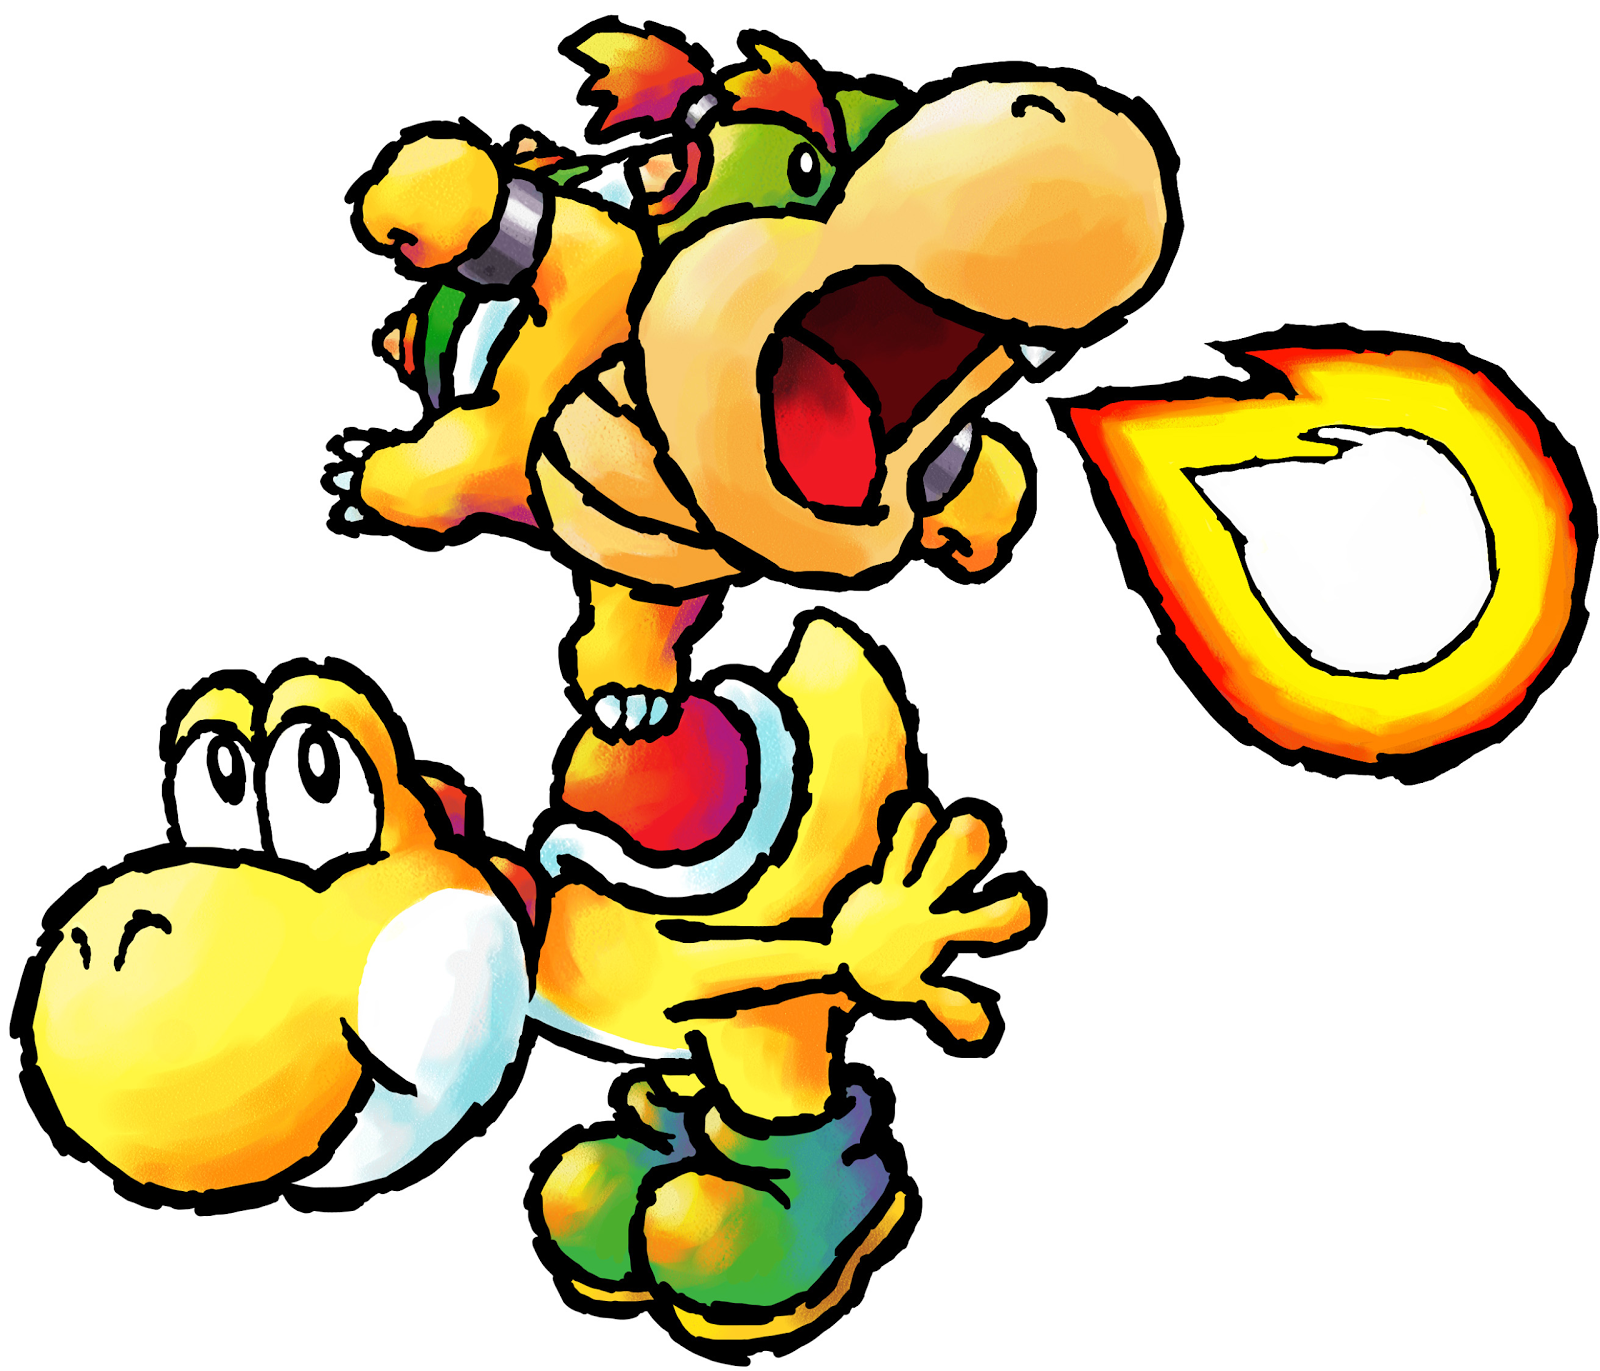 baby bowser yellow yoshi yoshi 27s island DS pngYoshi And Bowser